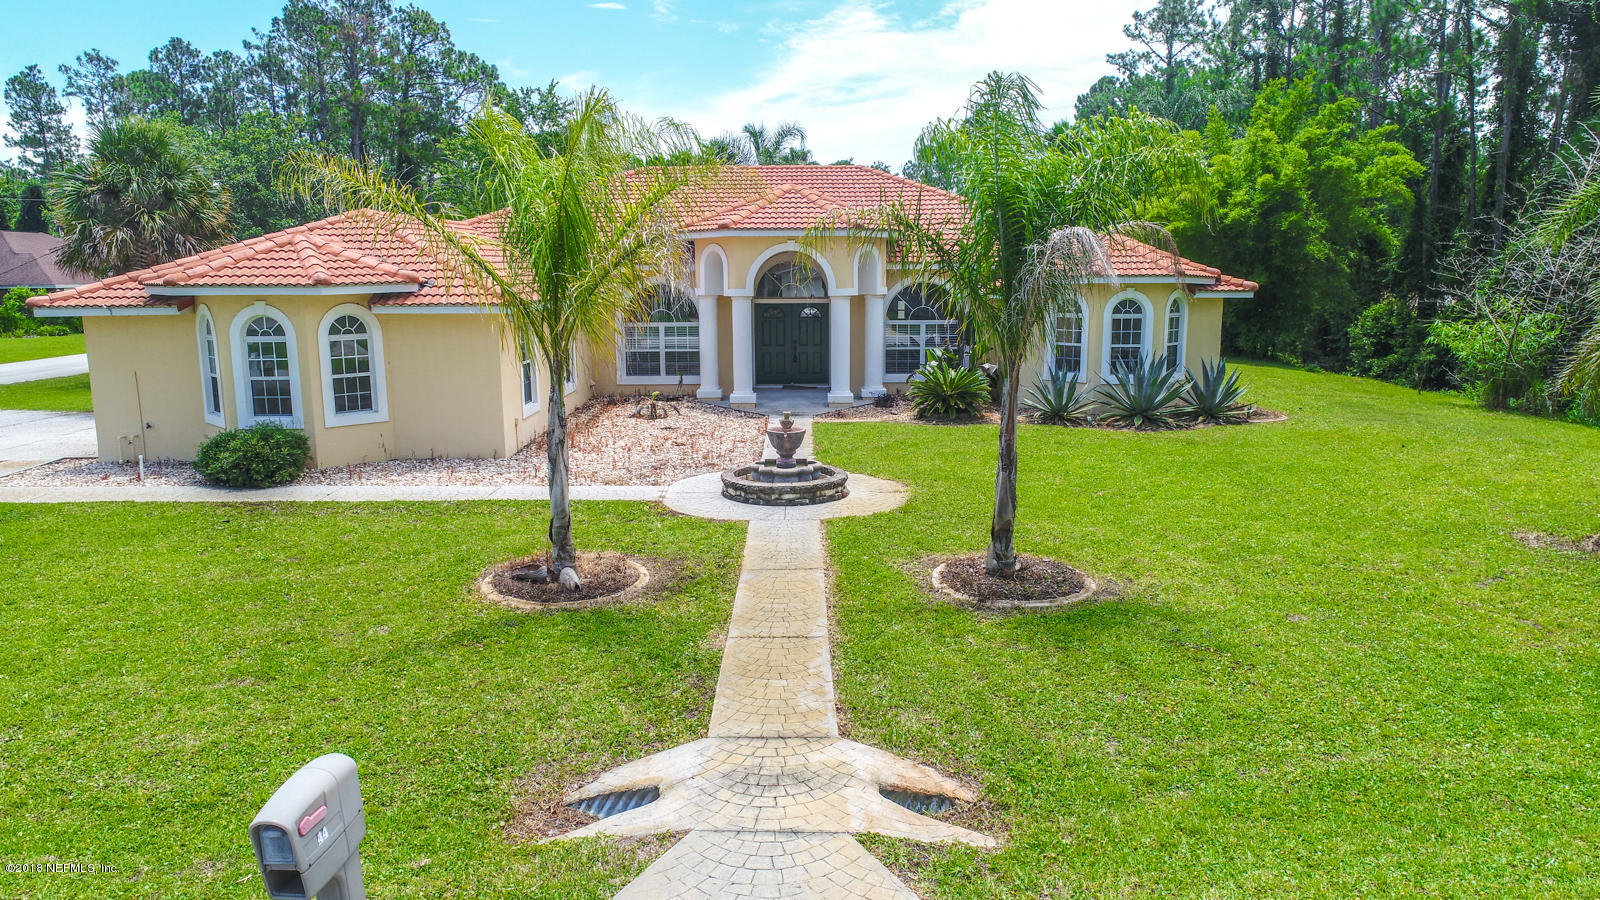 44 BURNING EMBER, PALM COAST, FLORIDA 32137, 3 Bedrooms Bedrooms, ,3 BathroomsBathrooms,Residential - single family,For sale,BURNING EMBER,945738